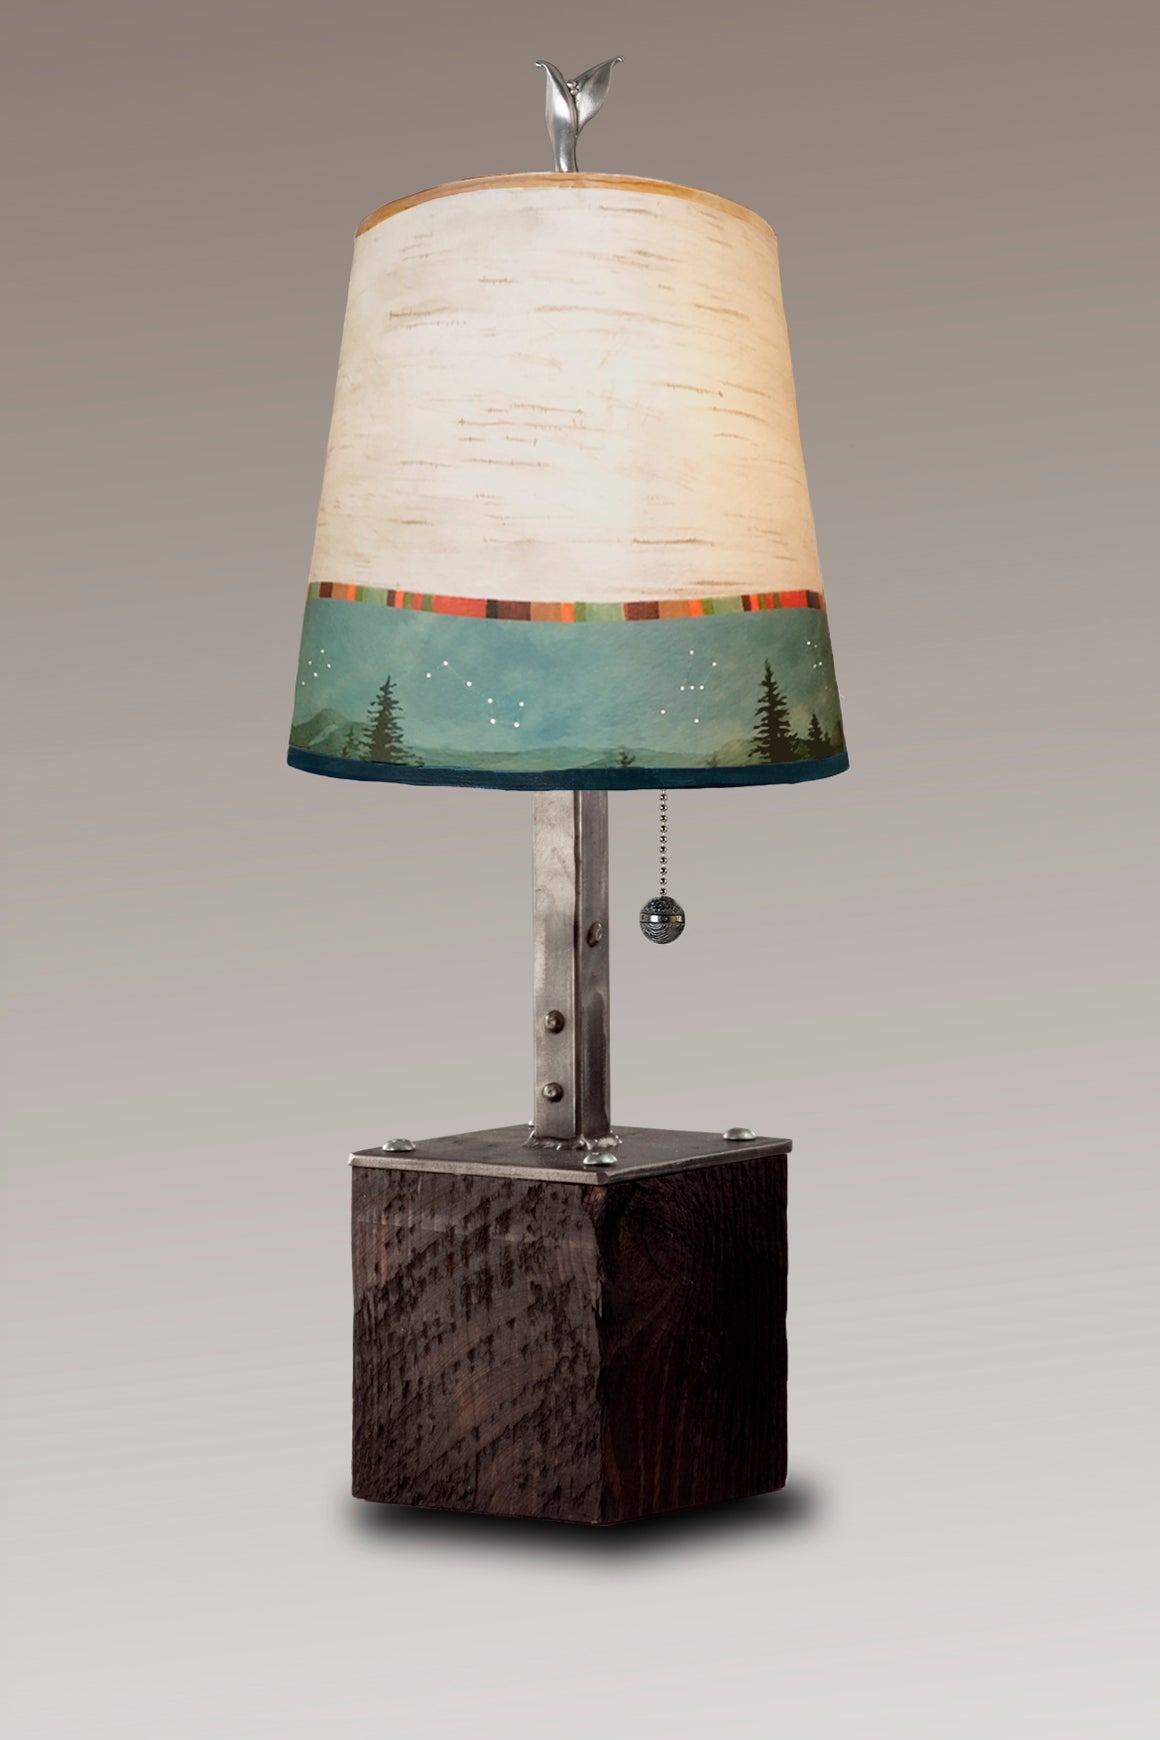 Steel Table Lamp on Reclaimed Wood with Small Drum Shade in Birch Midnight